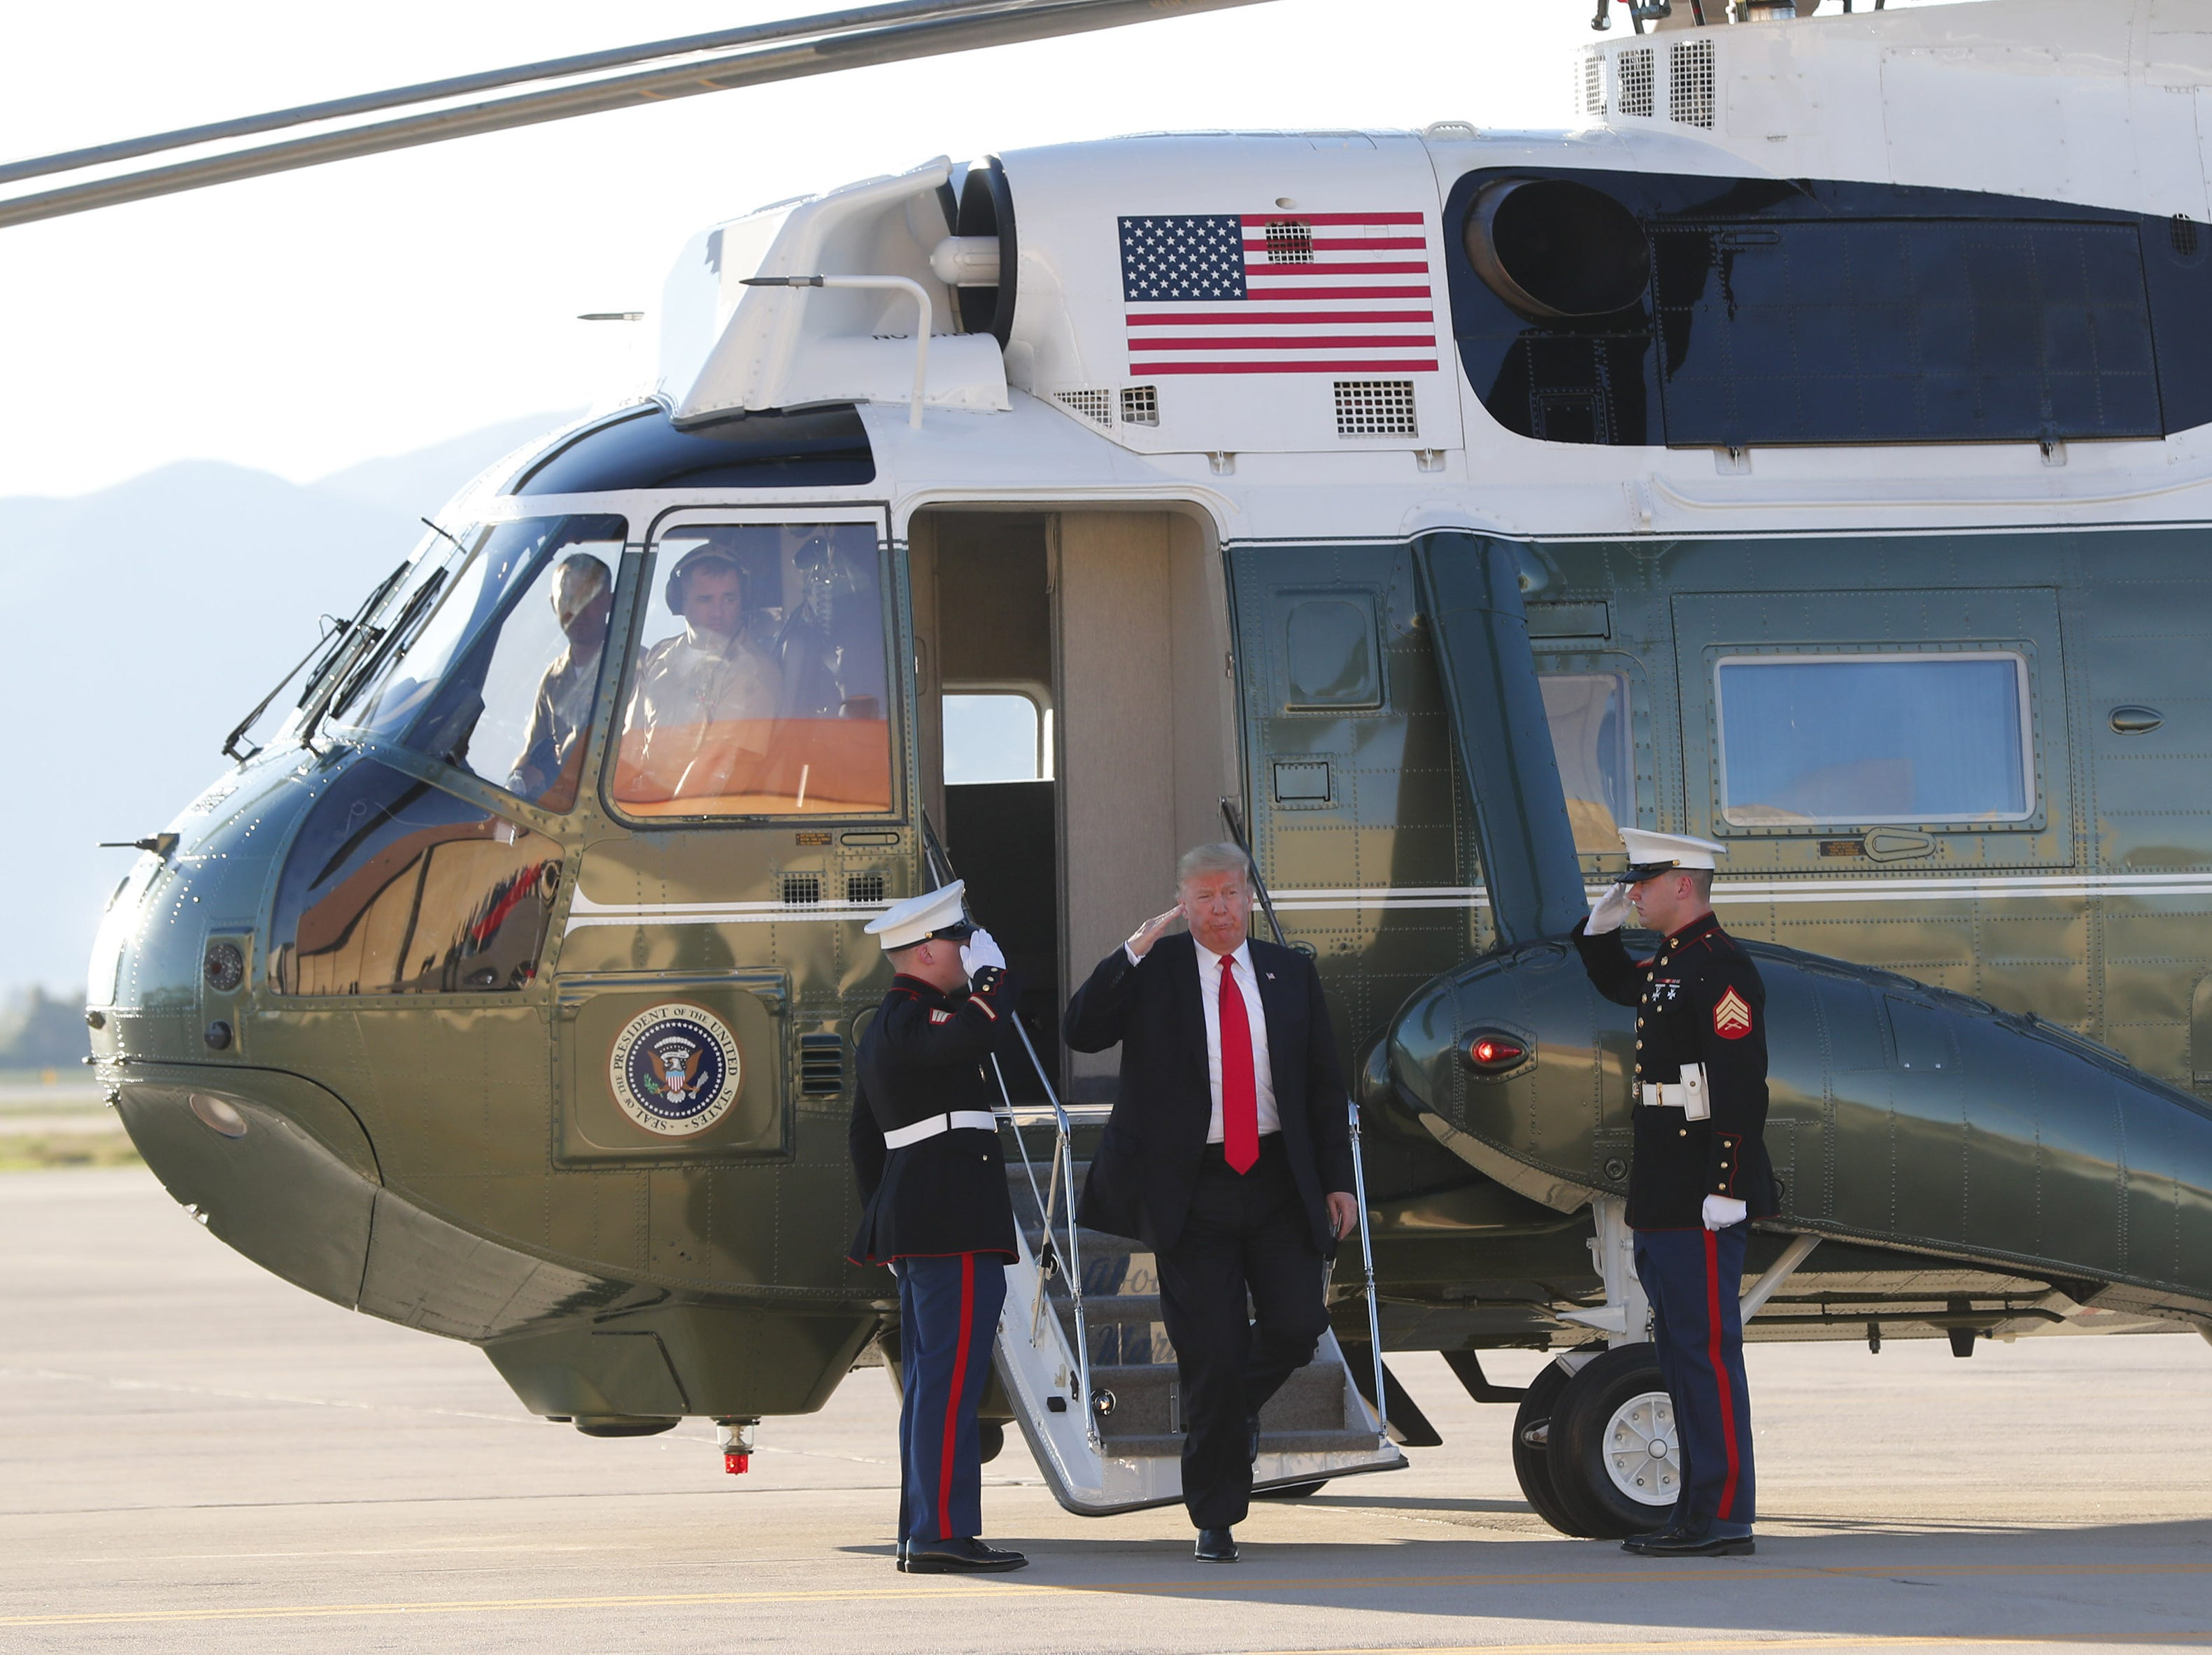 President Trump salutes while walking off Marine One during a defense capability and round-table tour at Luke Air Force Base in Glendale October 19, 2018.